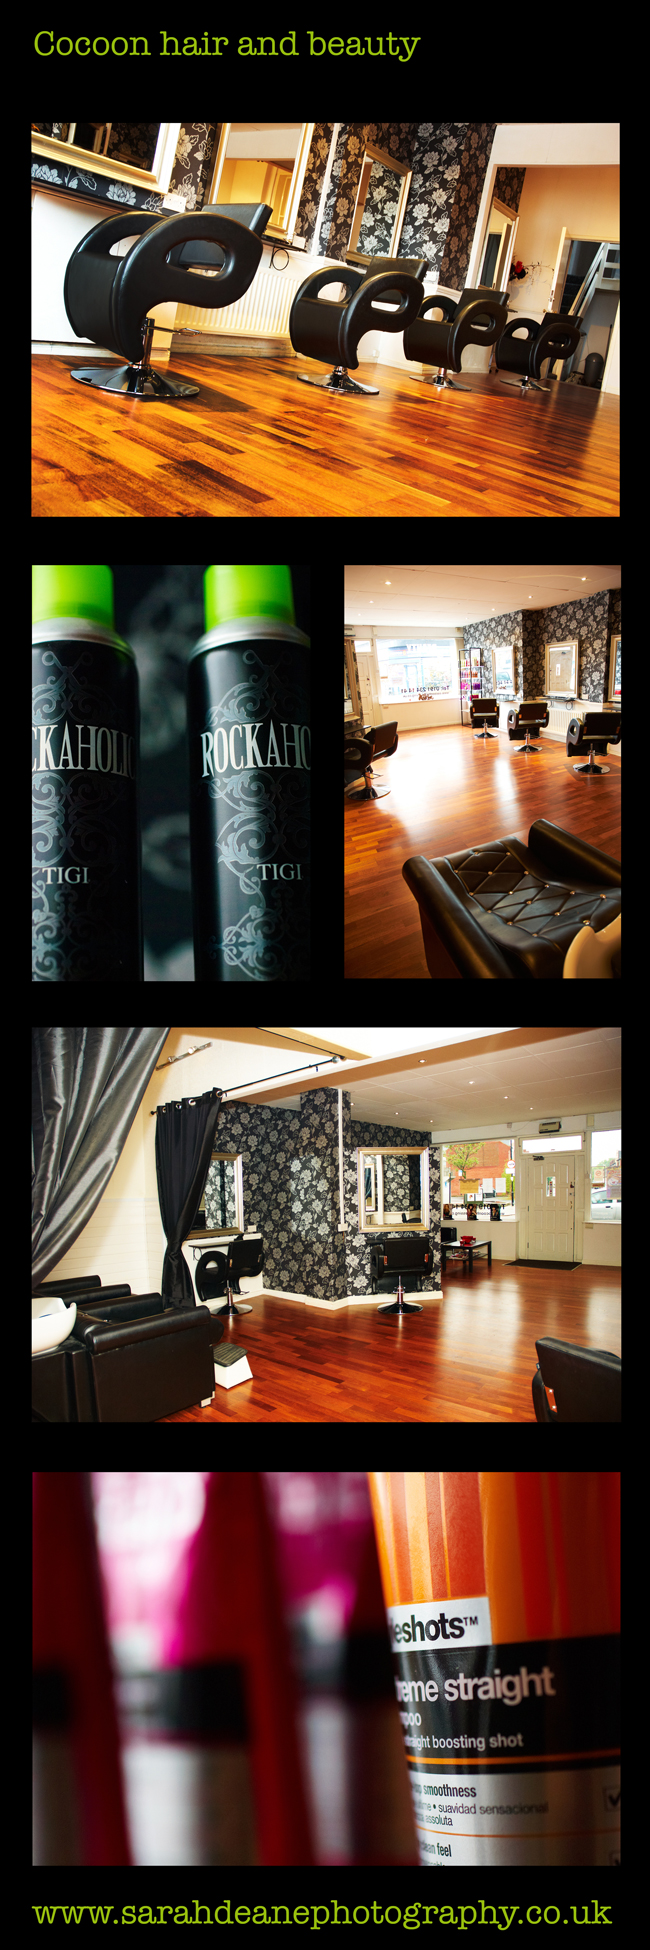 Cocoon Hair and Beauty Salon Interior Photography Newcastle 2